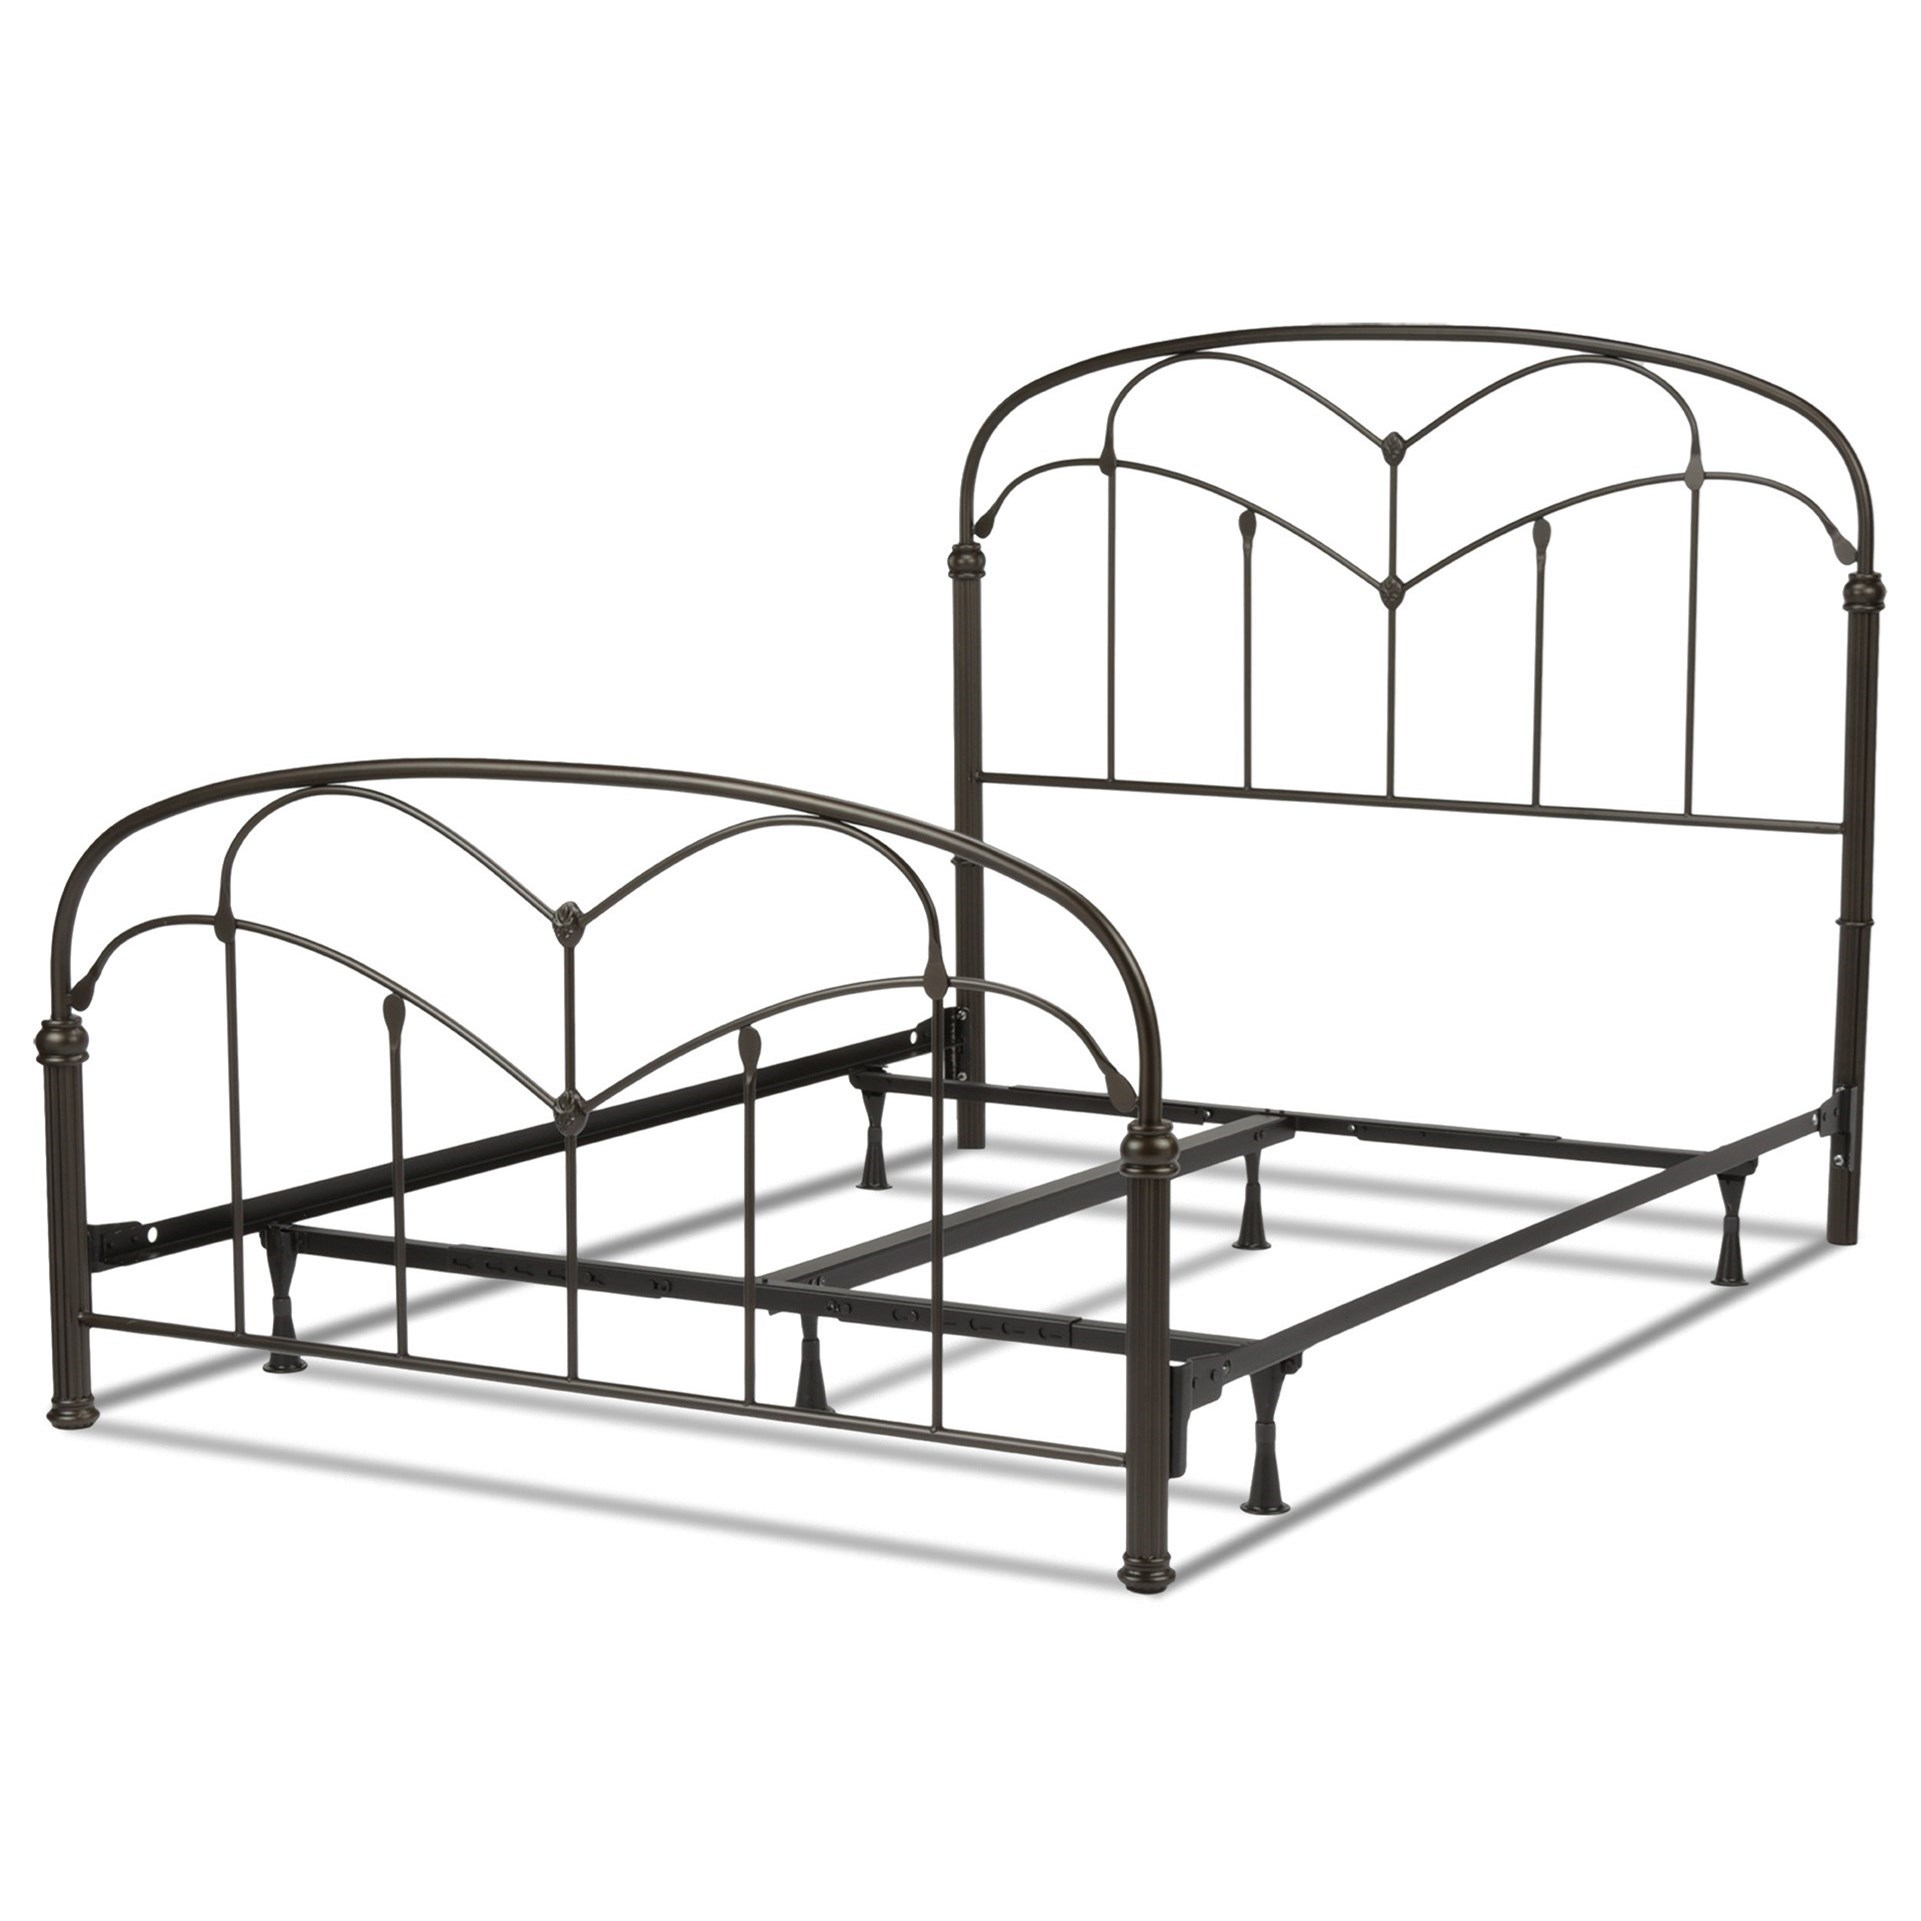 Fashion Bed Group Metal Beds Queen Pomona Bed W Frame